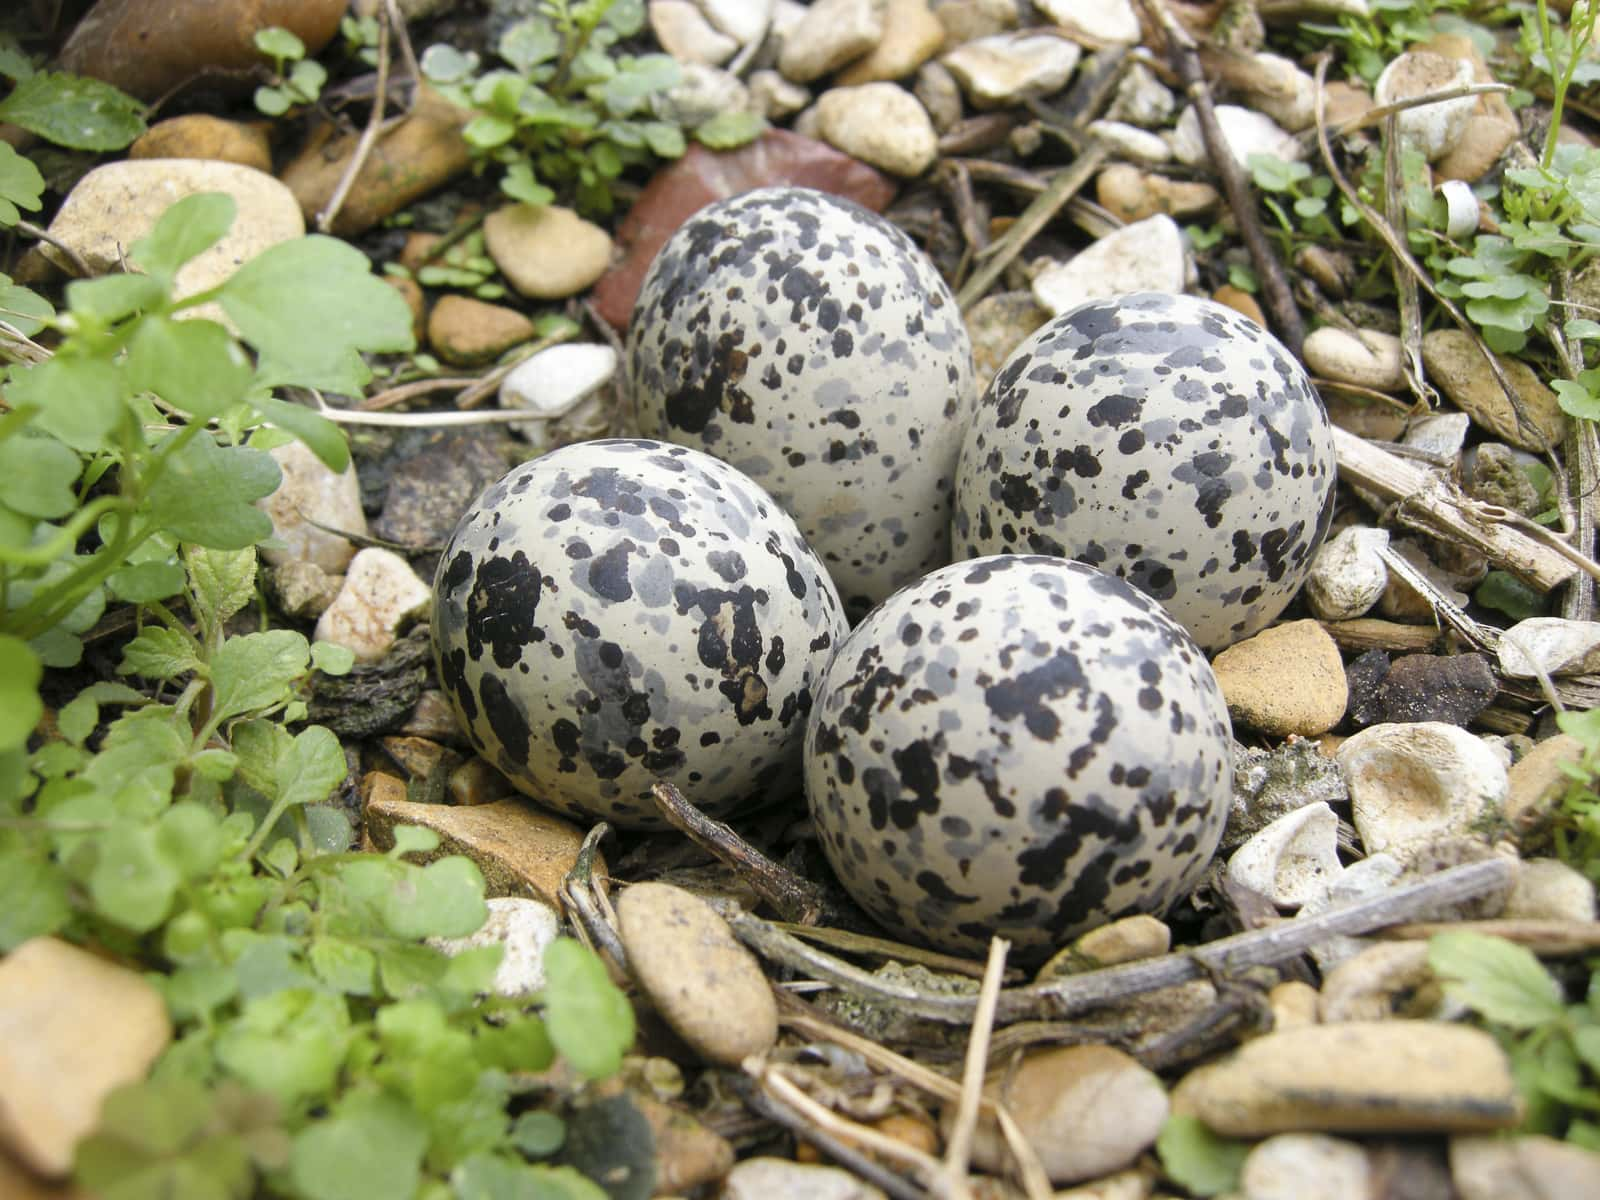 Killdeer Bird Eggs by Matthew T Rader